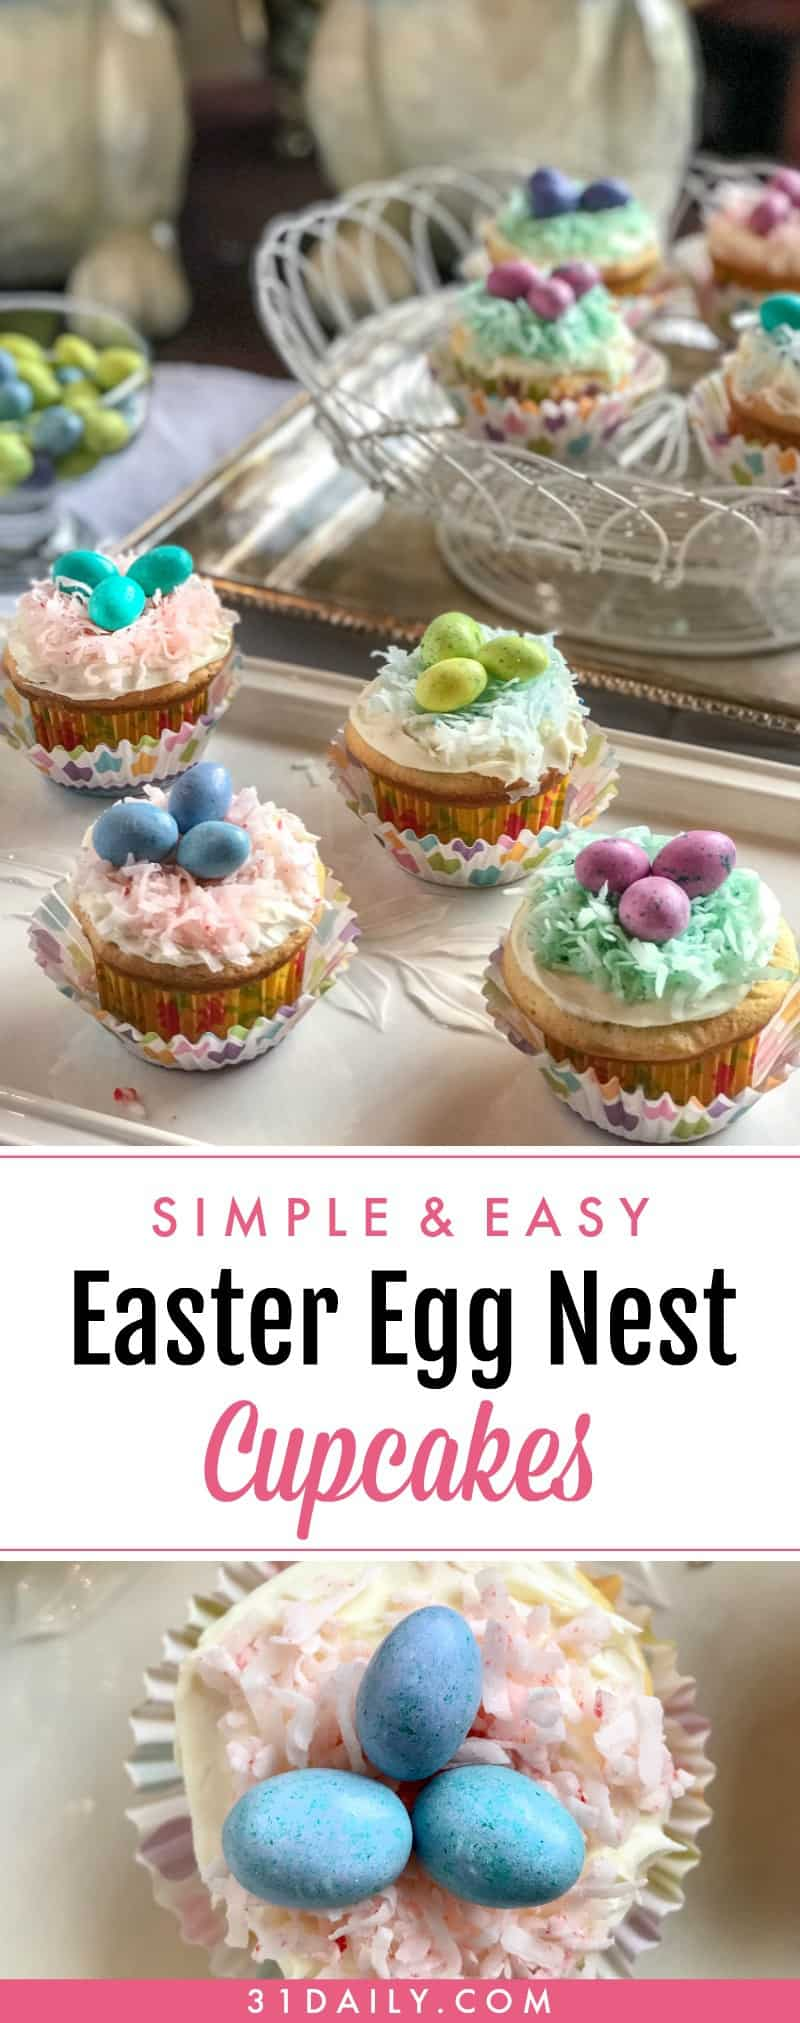 Easter Egg Nest Cupcakes Make Darling and Easy Treats | 31Daily.com